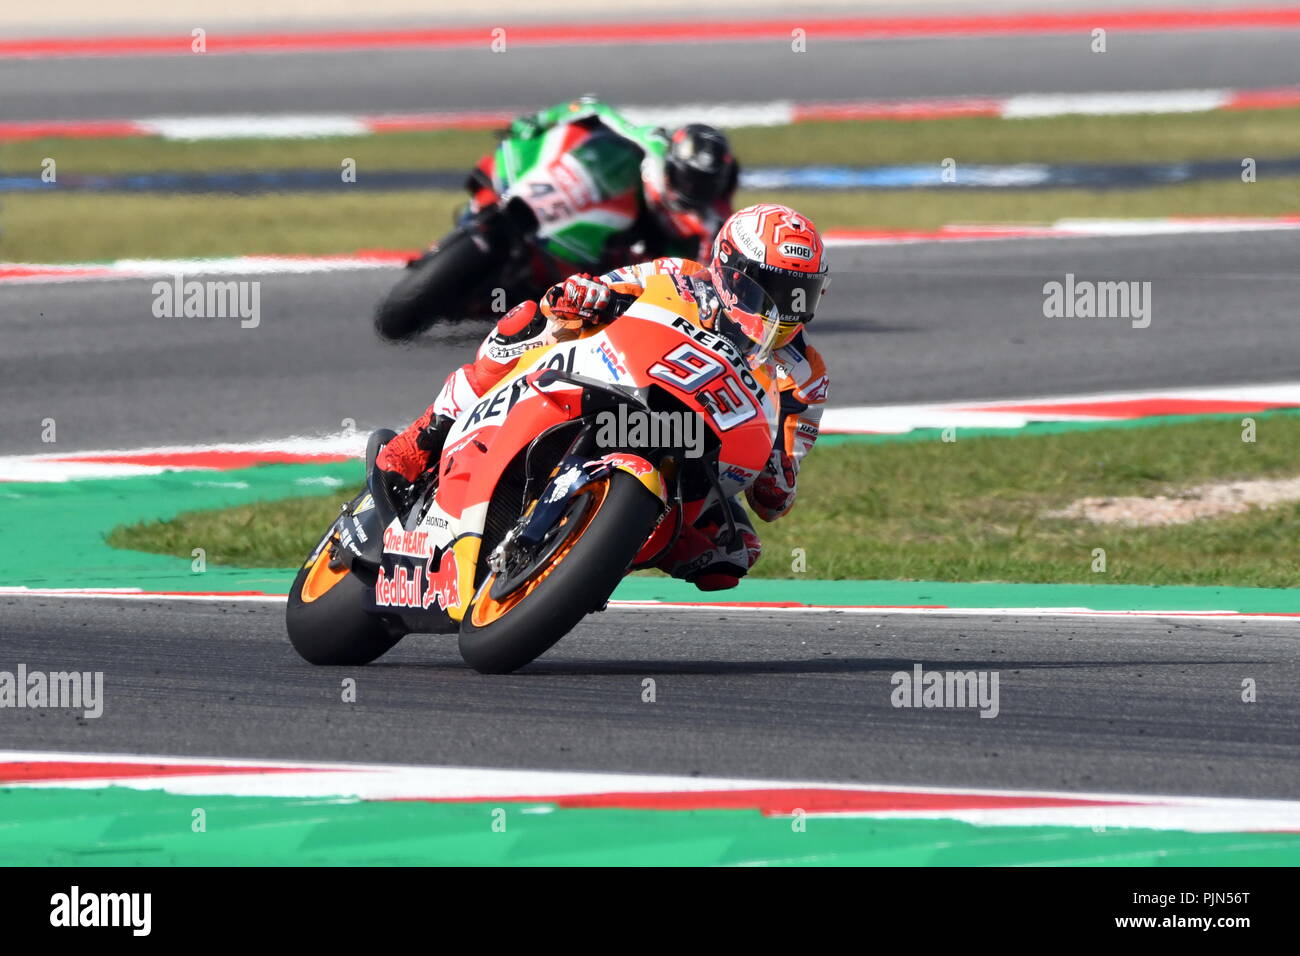 Misano Italy 08th Sep 2018 Motogp 2018 Misano Practice Session